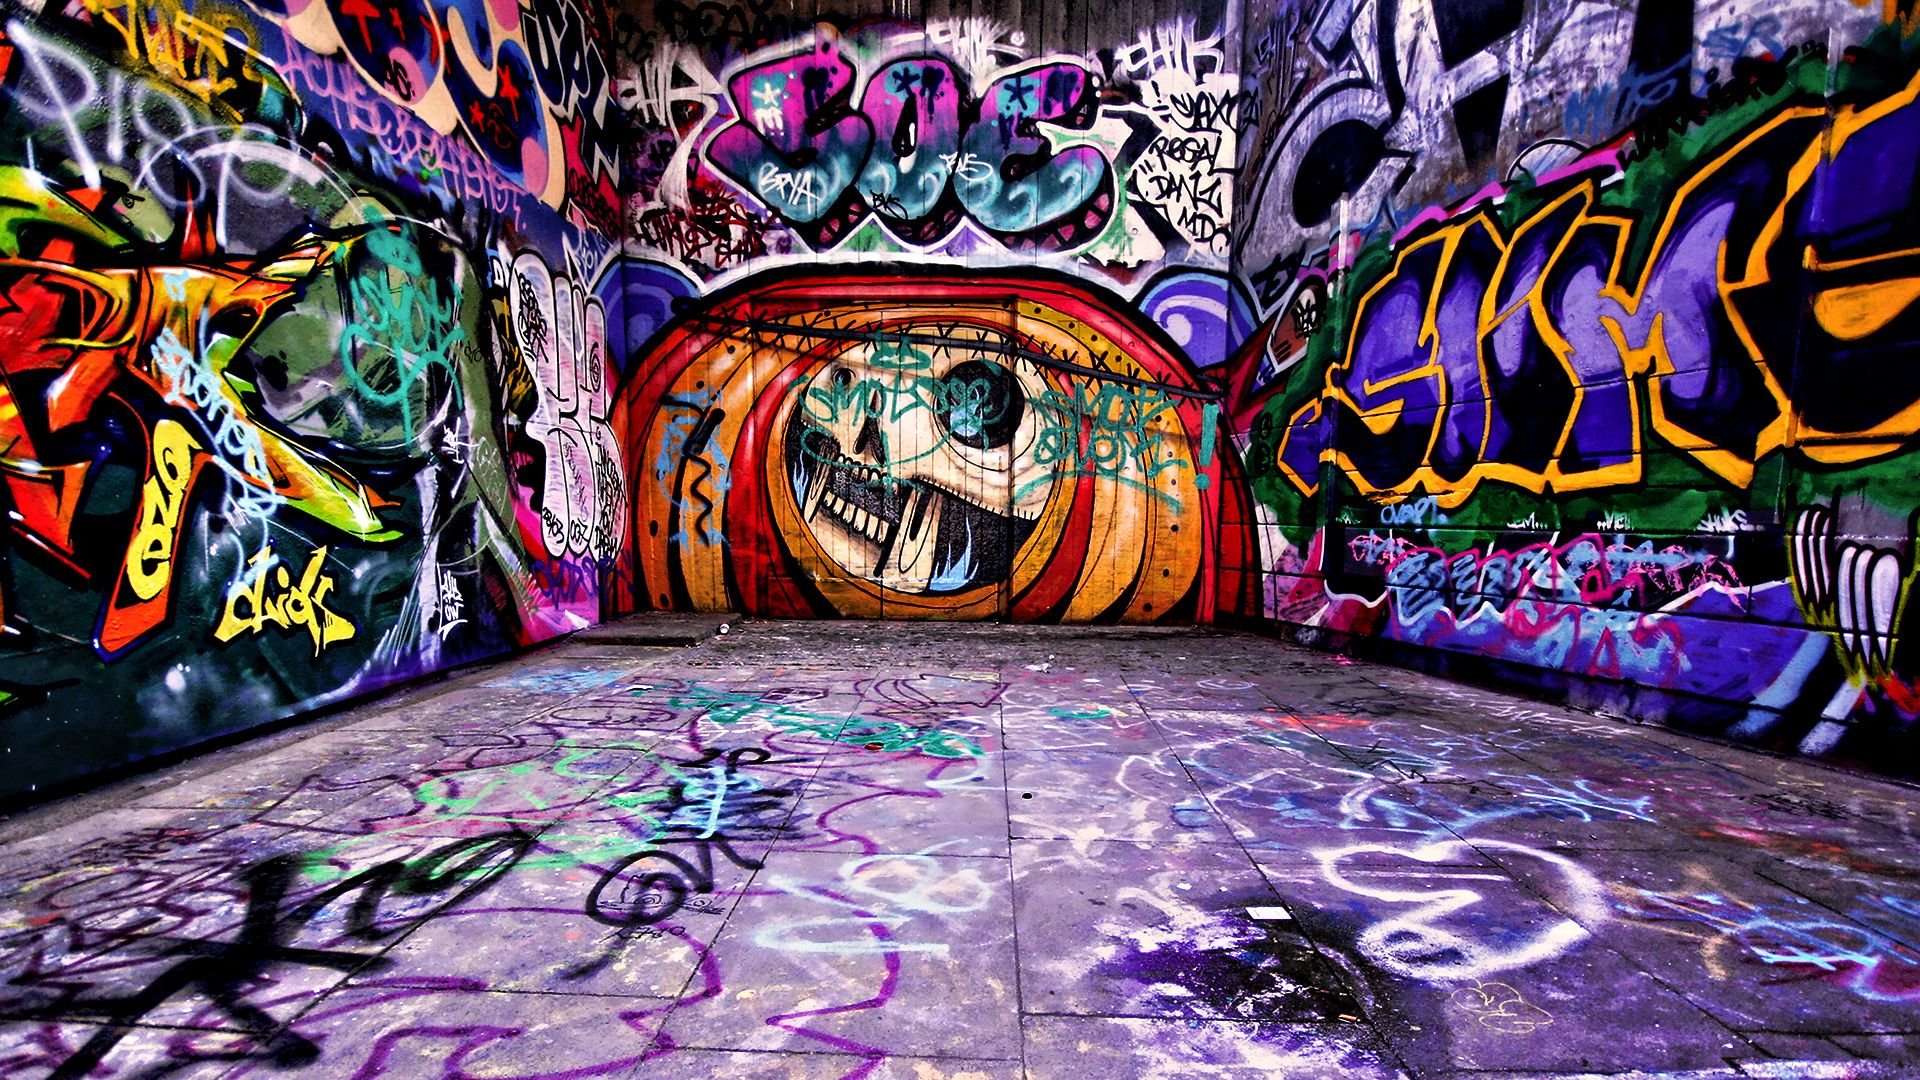 Graffiti Wallpaper 1920x1080 Graffiti Px 15517 Free